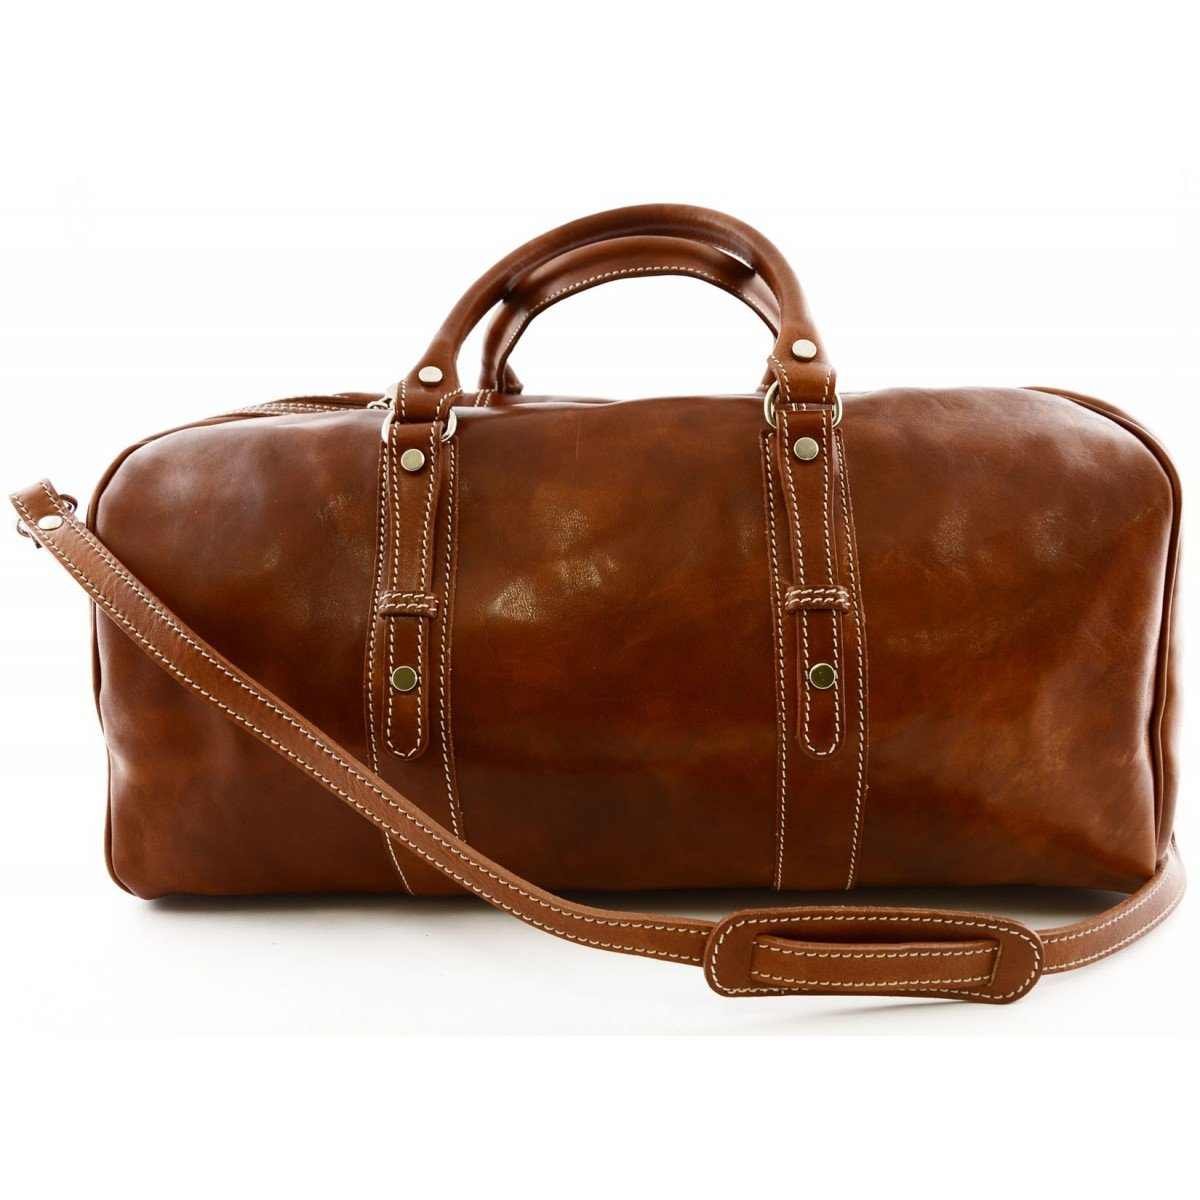 Made In Italy Genuine Leather Travel Bag With Studs Color Cognac - Travel Bag   B018W61RMI